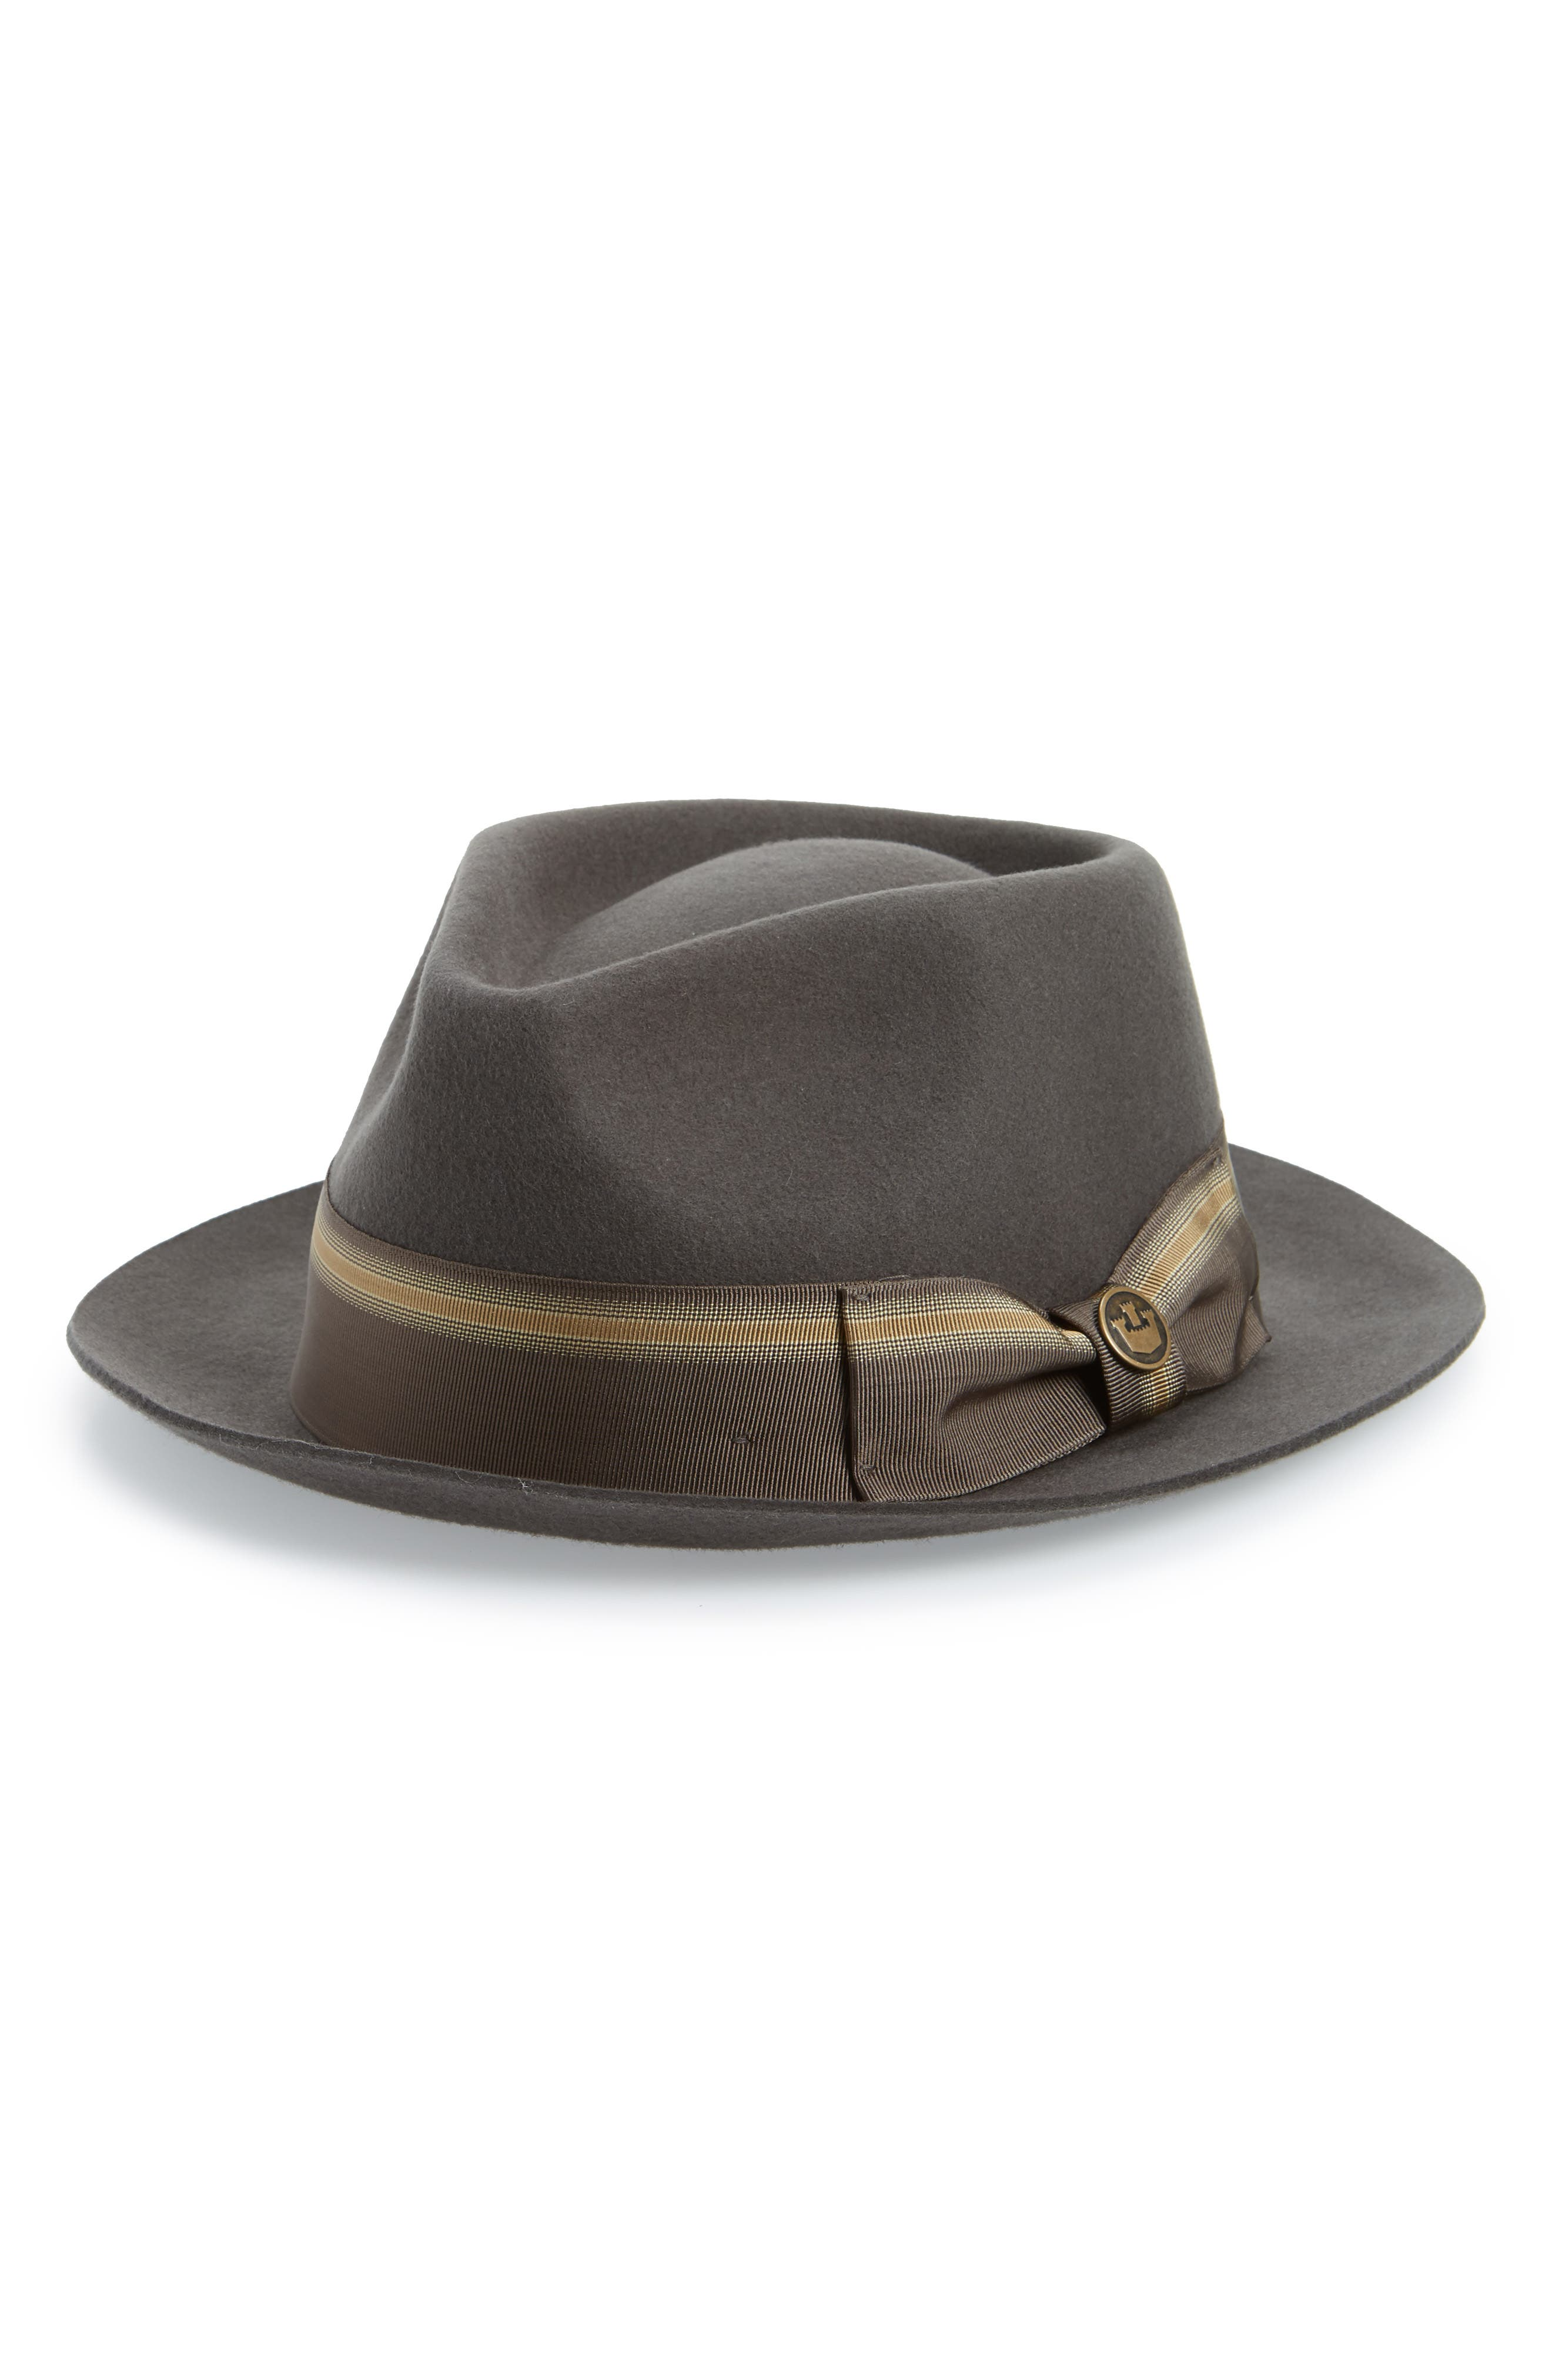 Goorin Bros. Star Boy Fedora - Grey